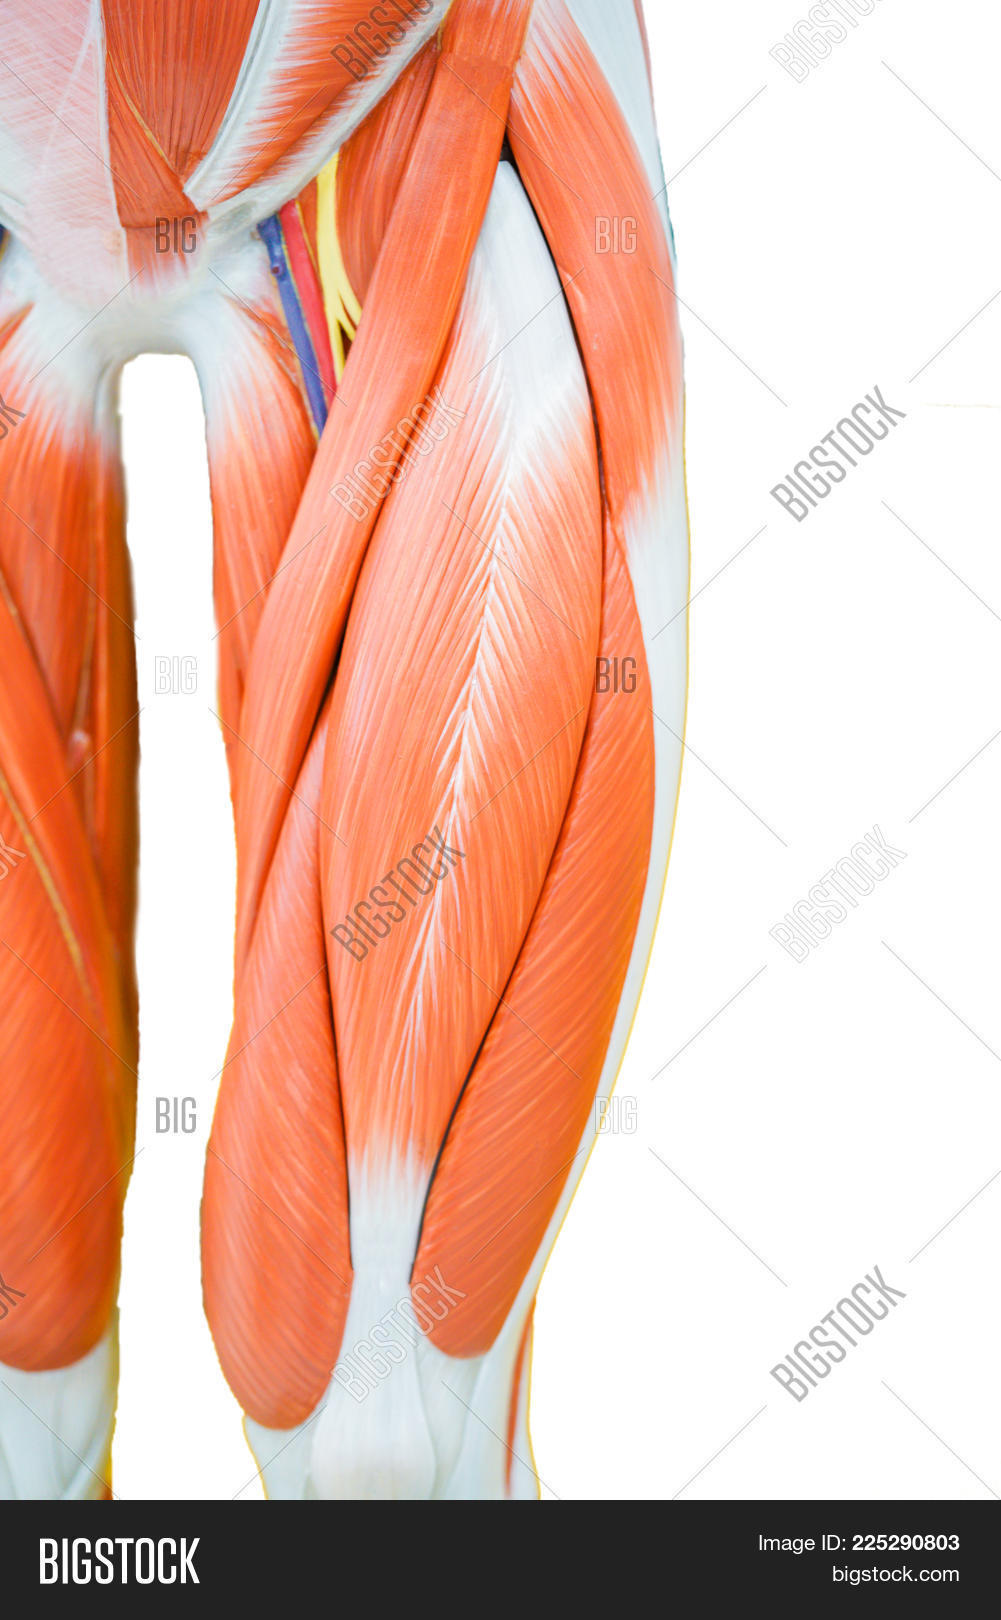 Human Thigh Muscle Image & Photo (Free Trial) | Bigstock